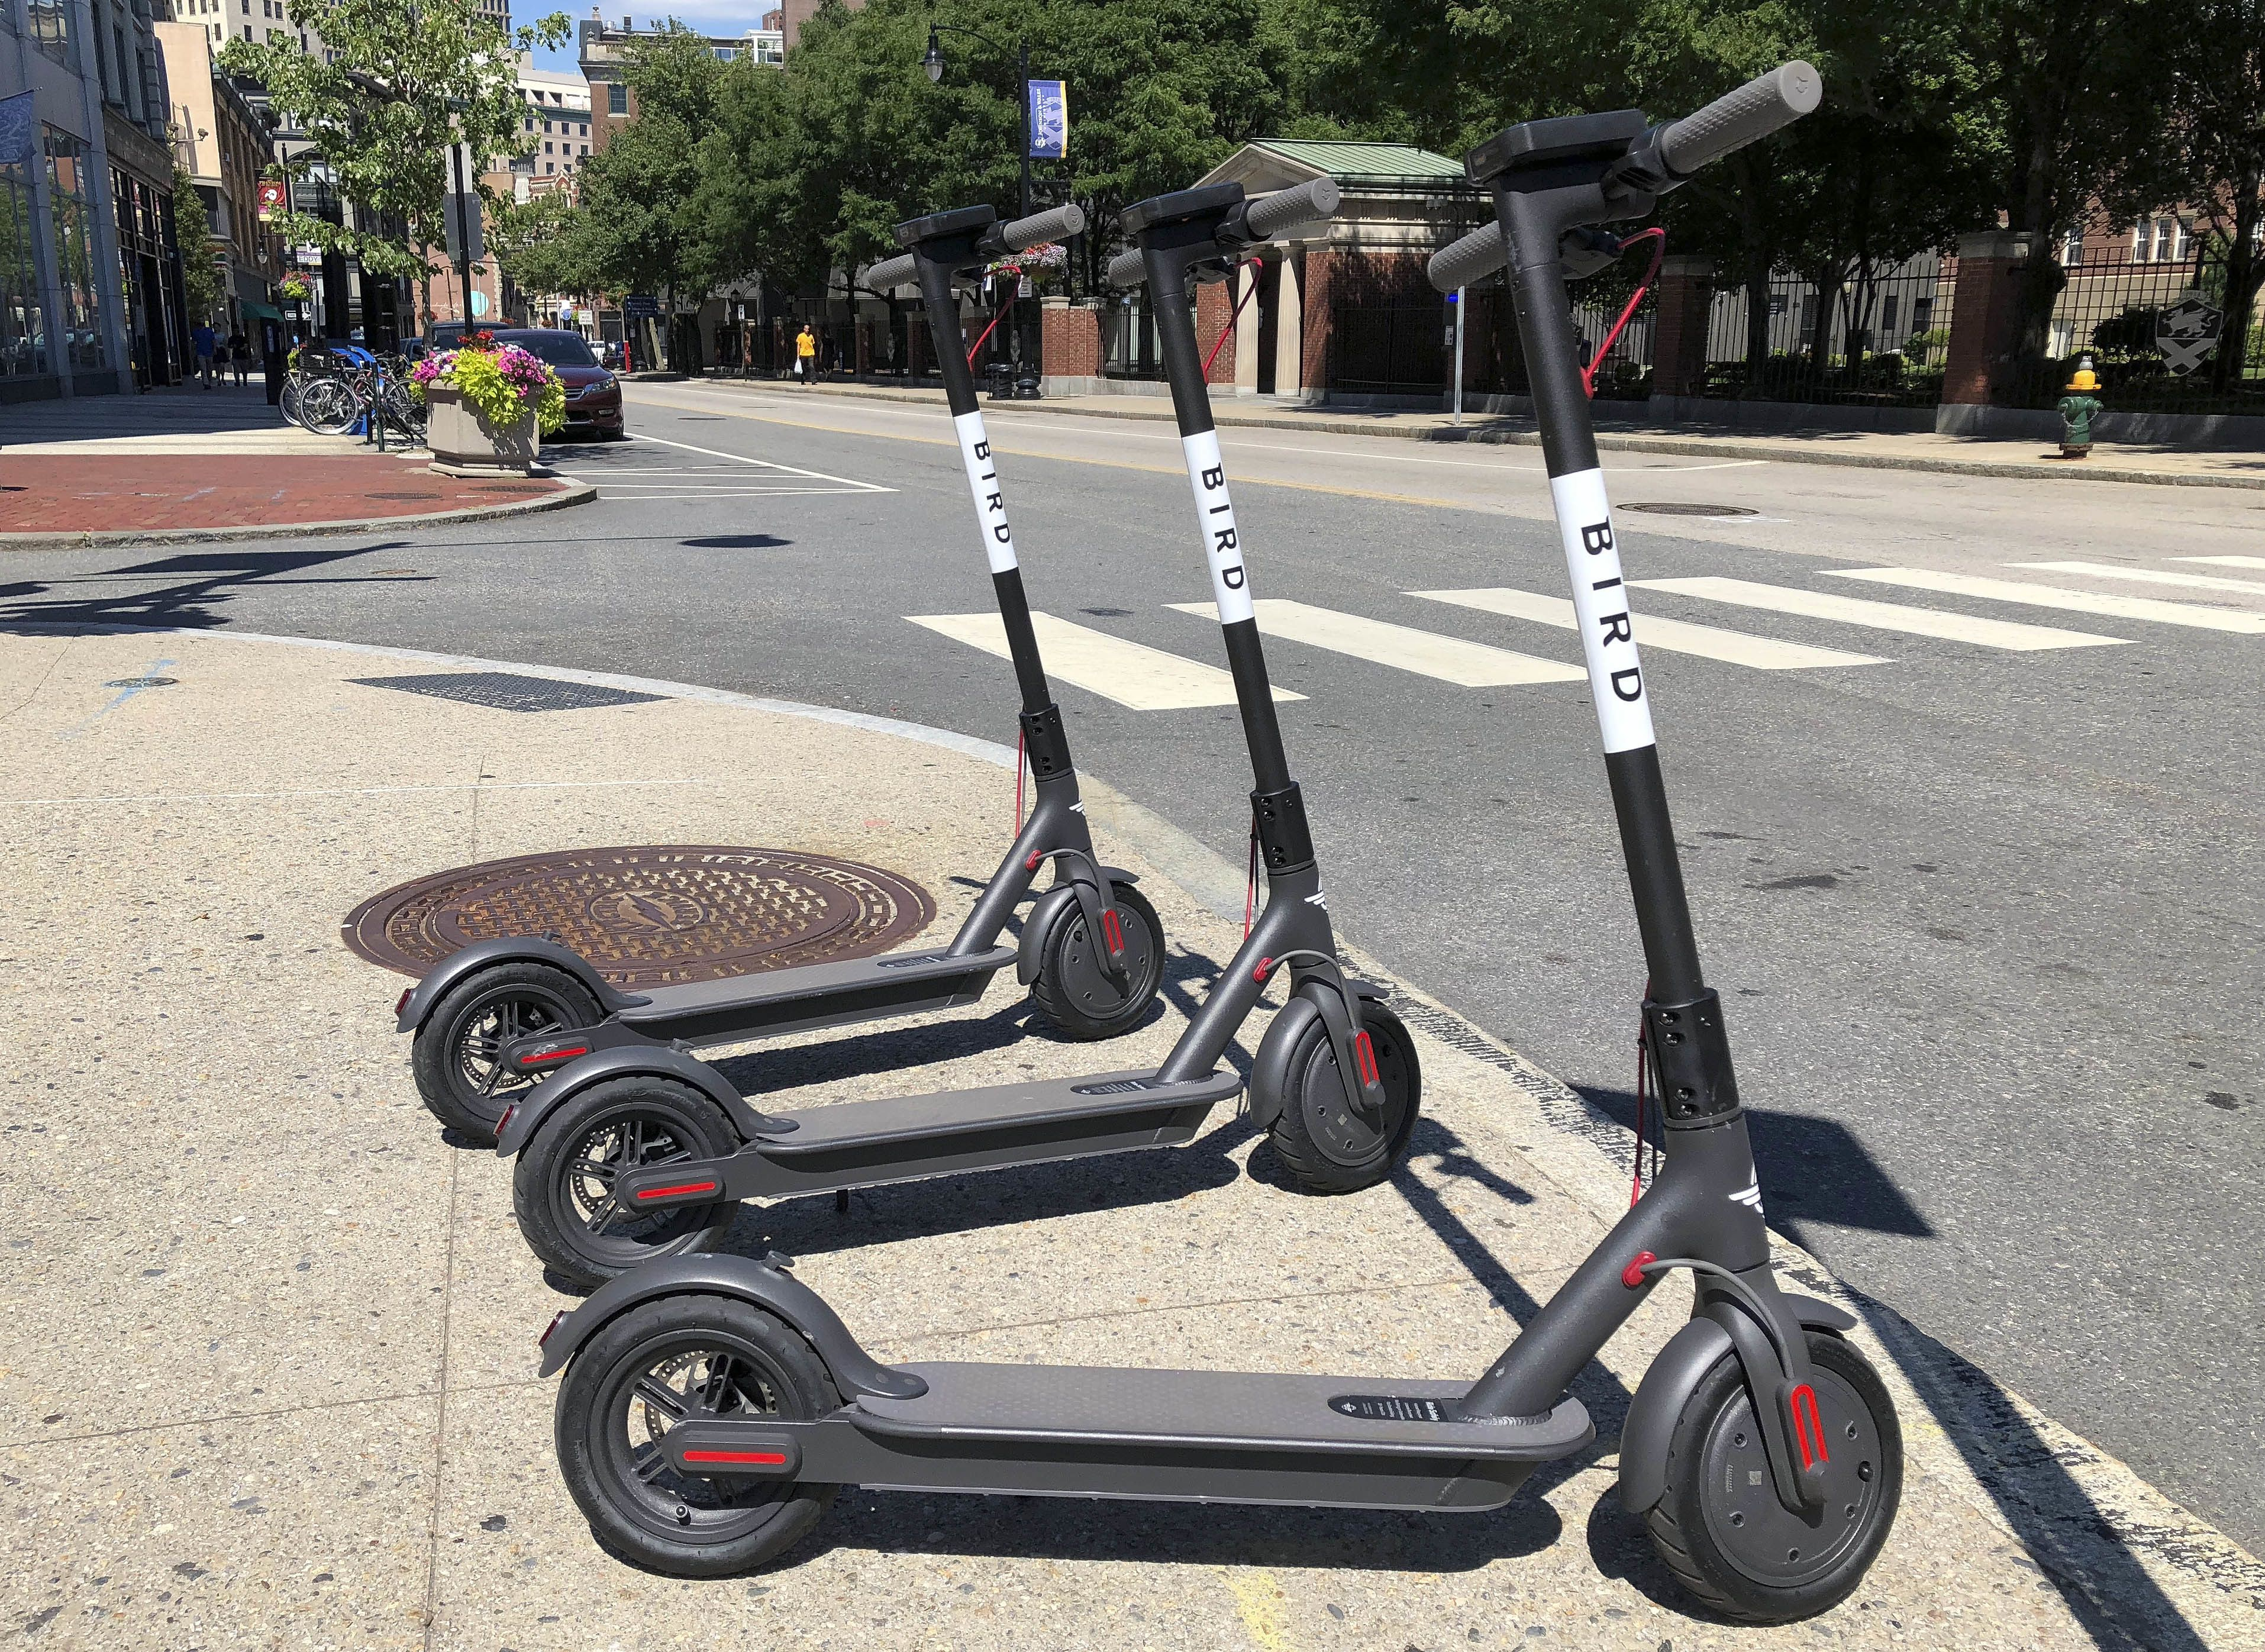 With Bird scooters about to be pulled off Cambridge streets